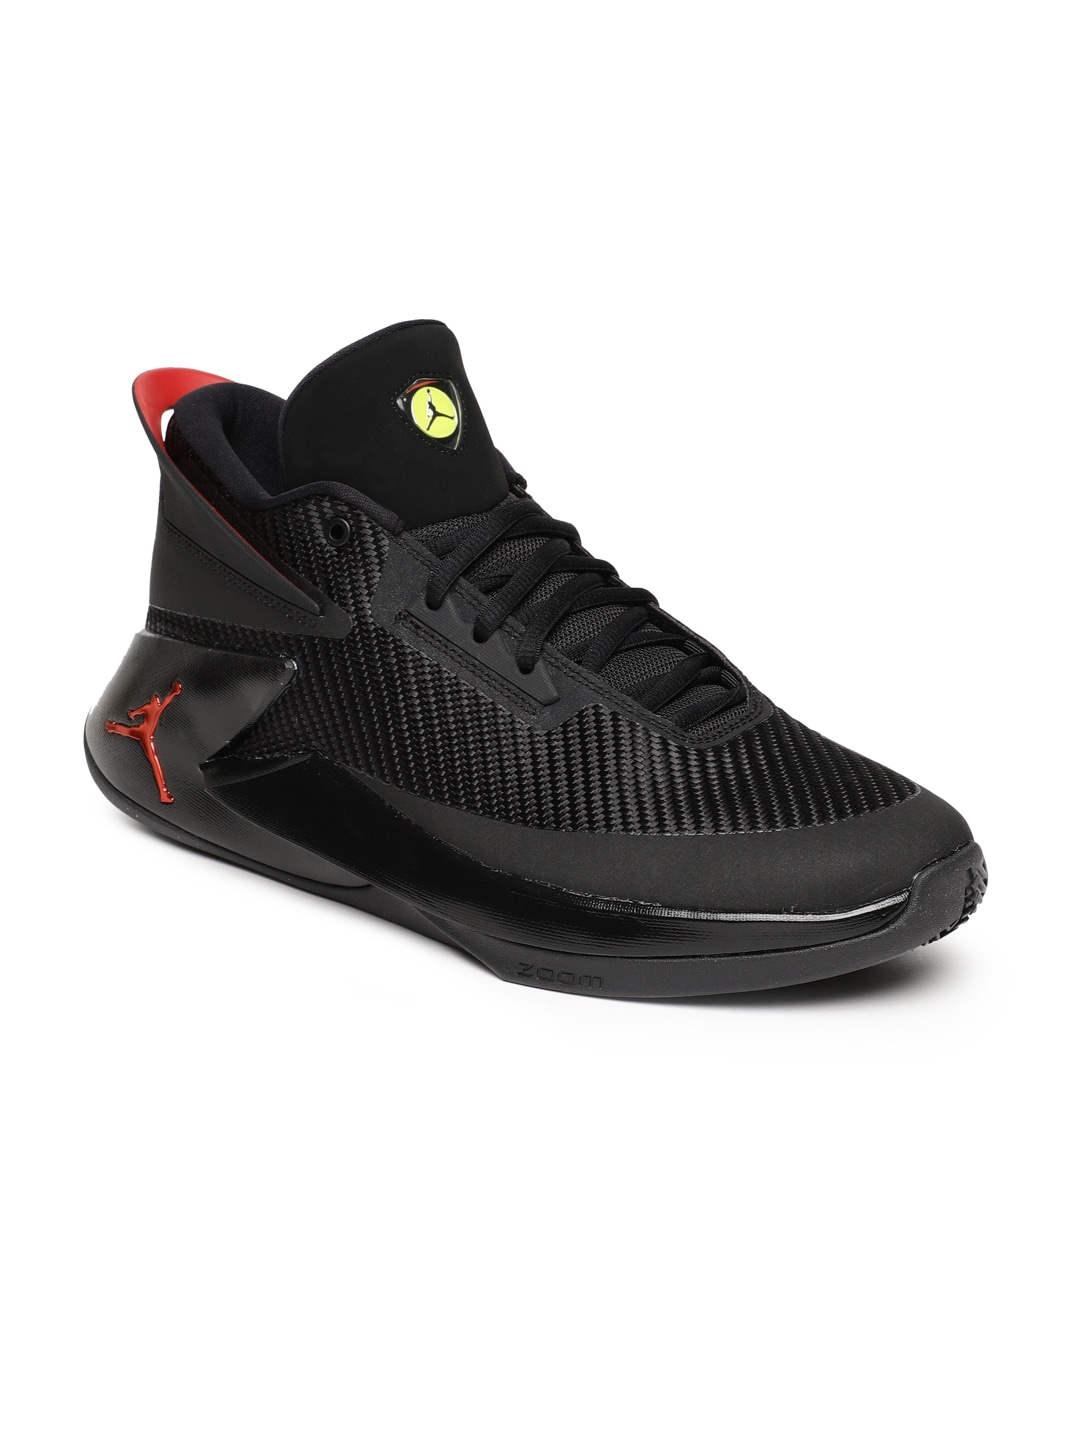 buy popular 0896c 95c3d Nike Sports Shoes For Men - Buy Nike Sports Shoes For Men online in India